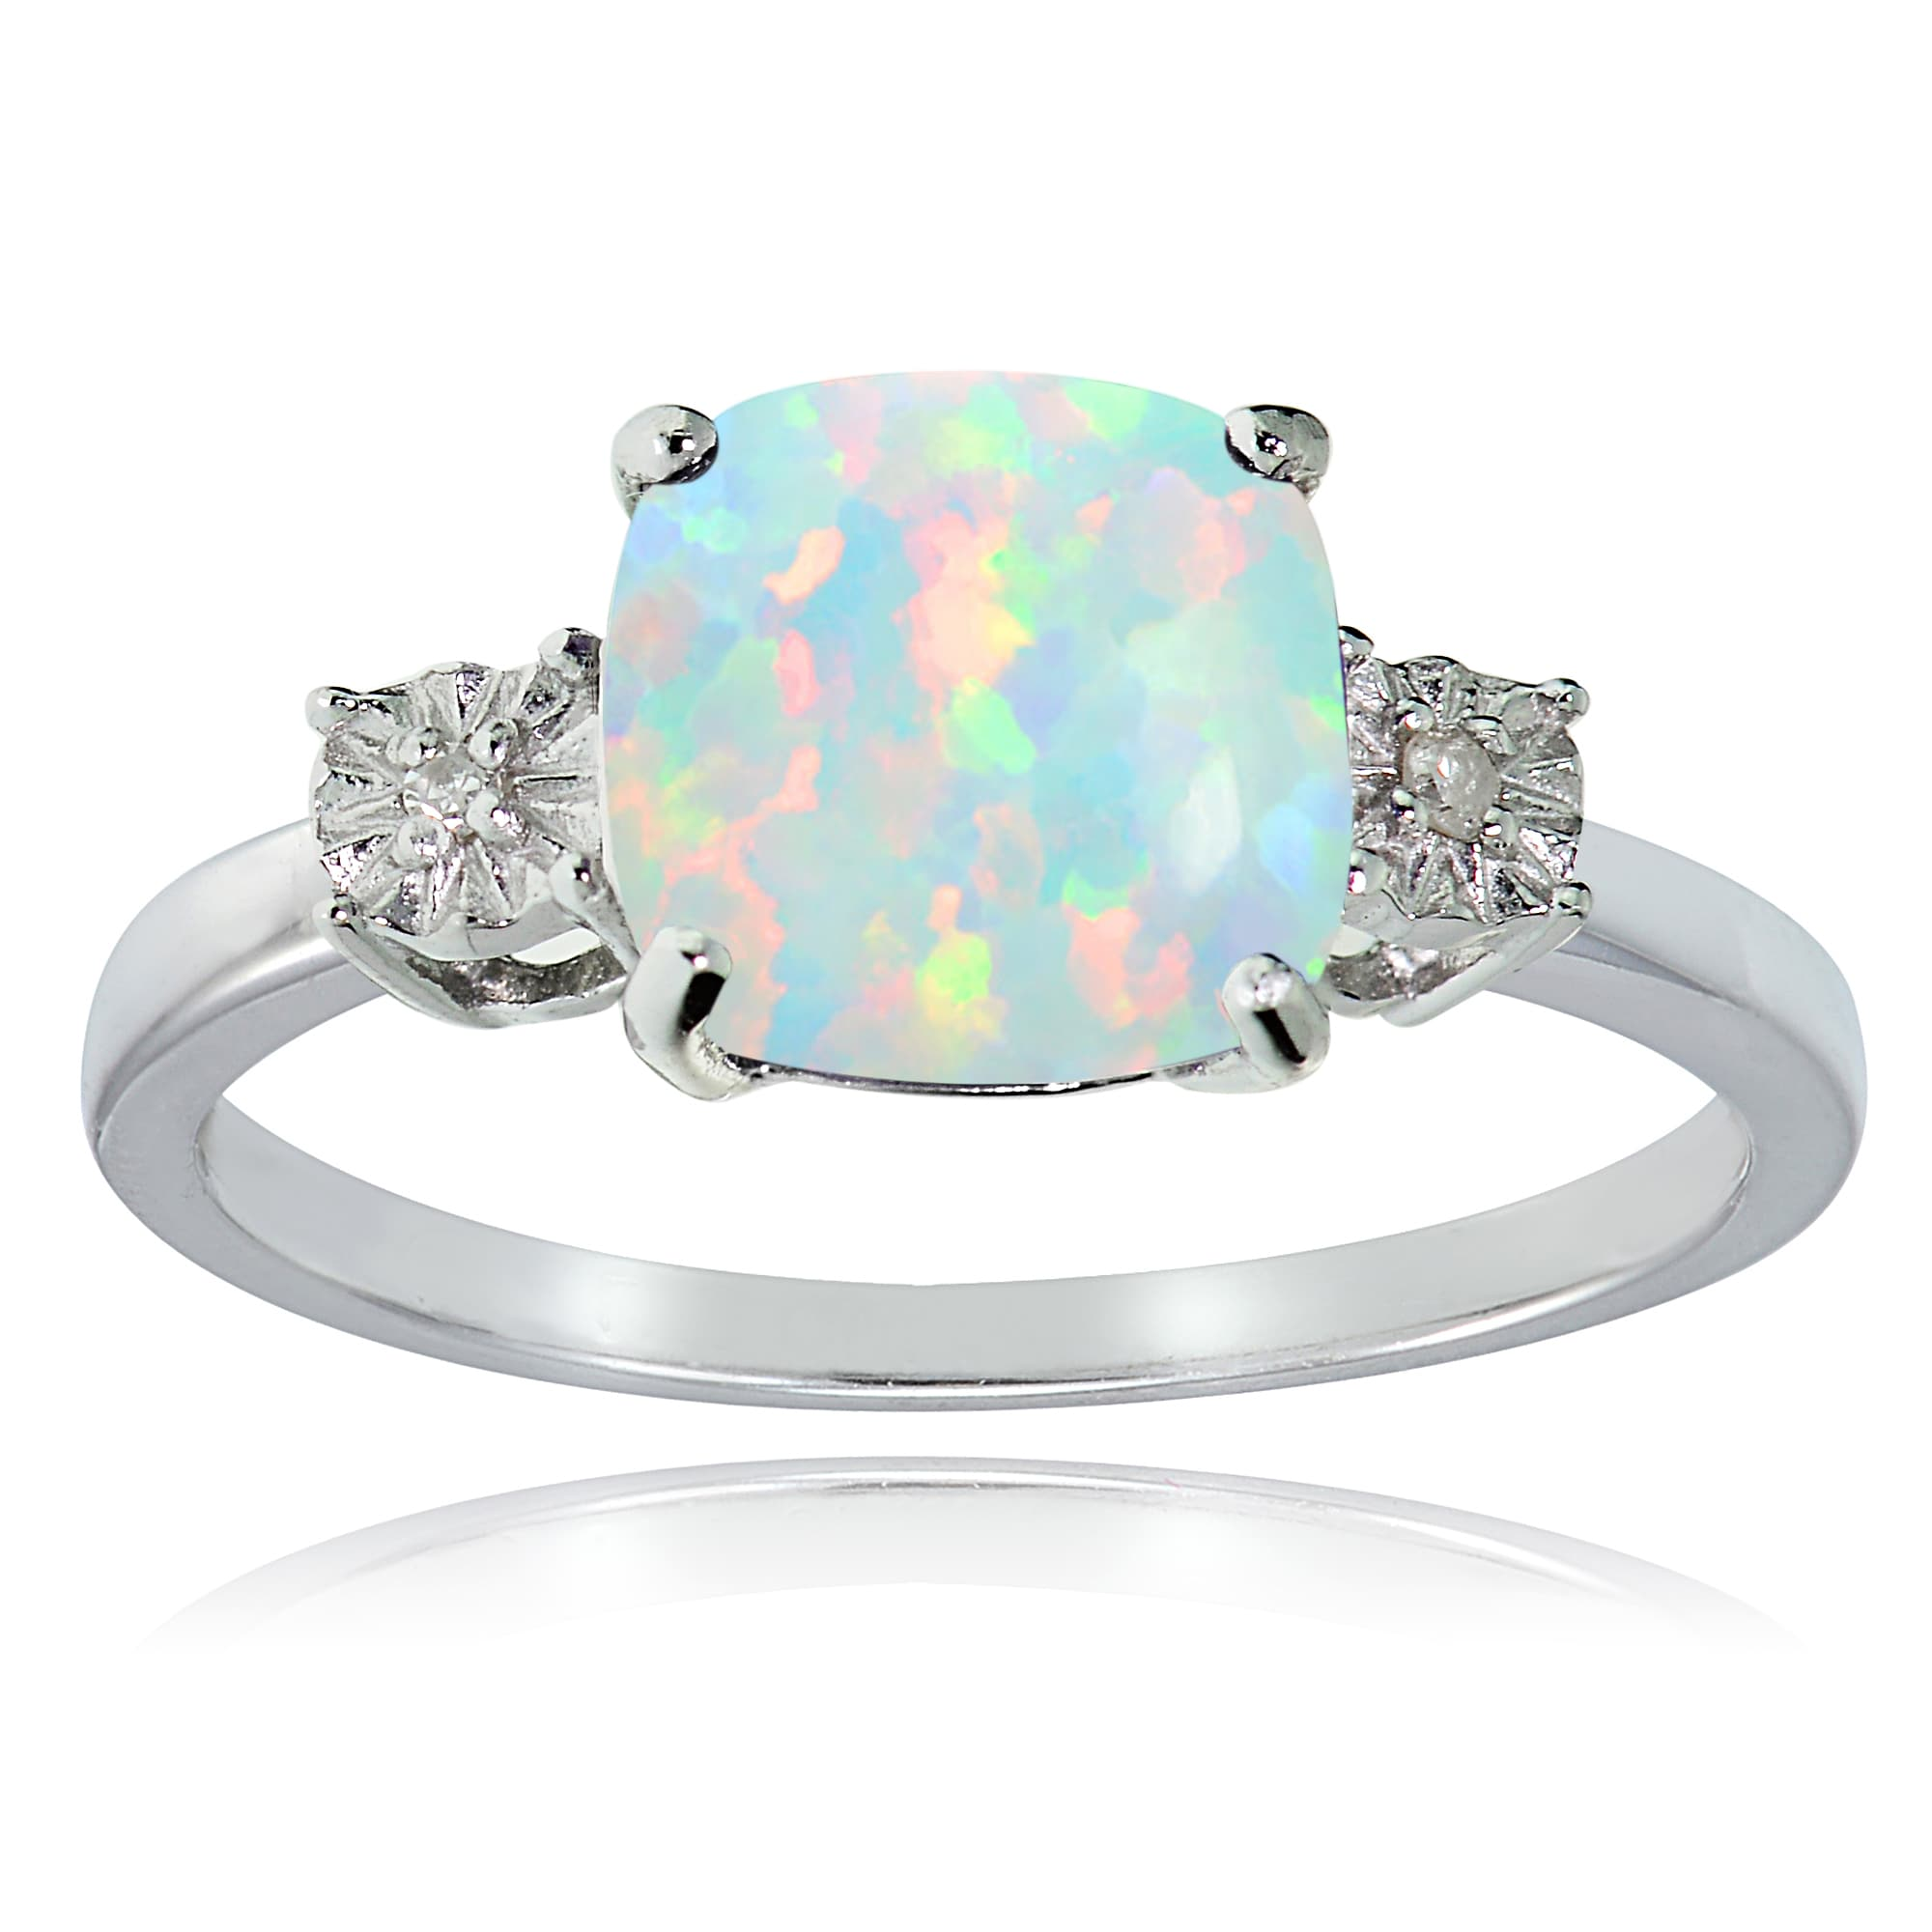 Princess Kylie Rectangle White Synthetic Opal Cubic Zirconia Ring Sterling Silver Size 6